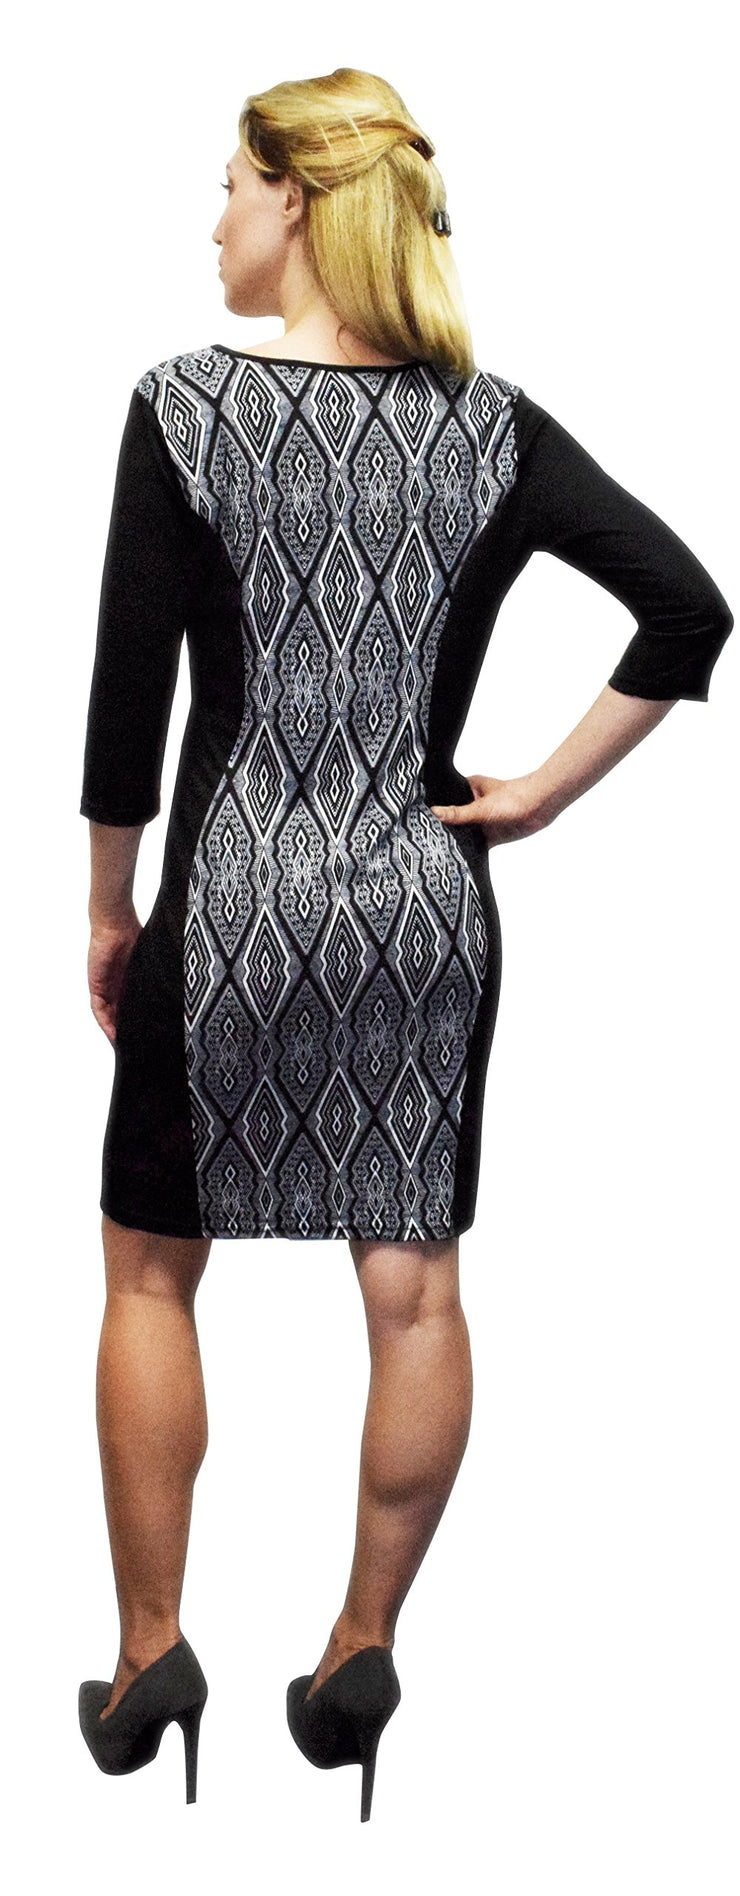 Peach Couture 3/4 Sleeves Chic Printed Work Business Party Sheath Slimming Dress